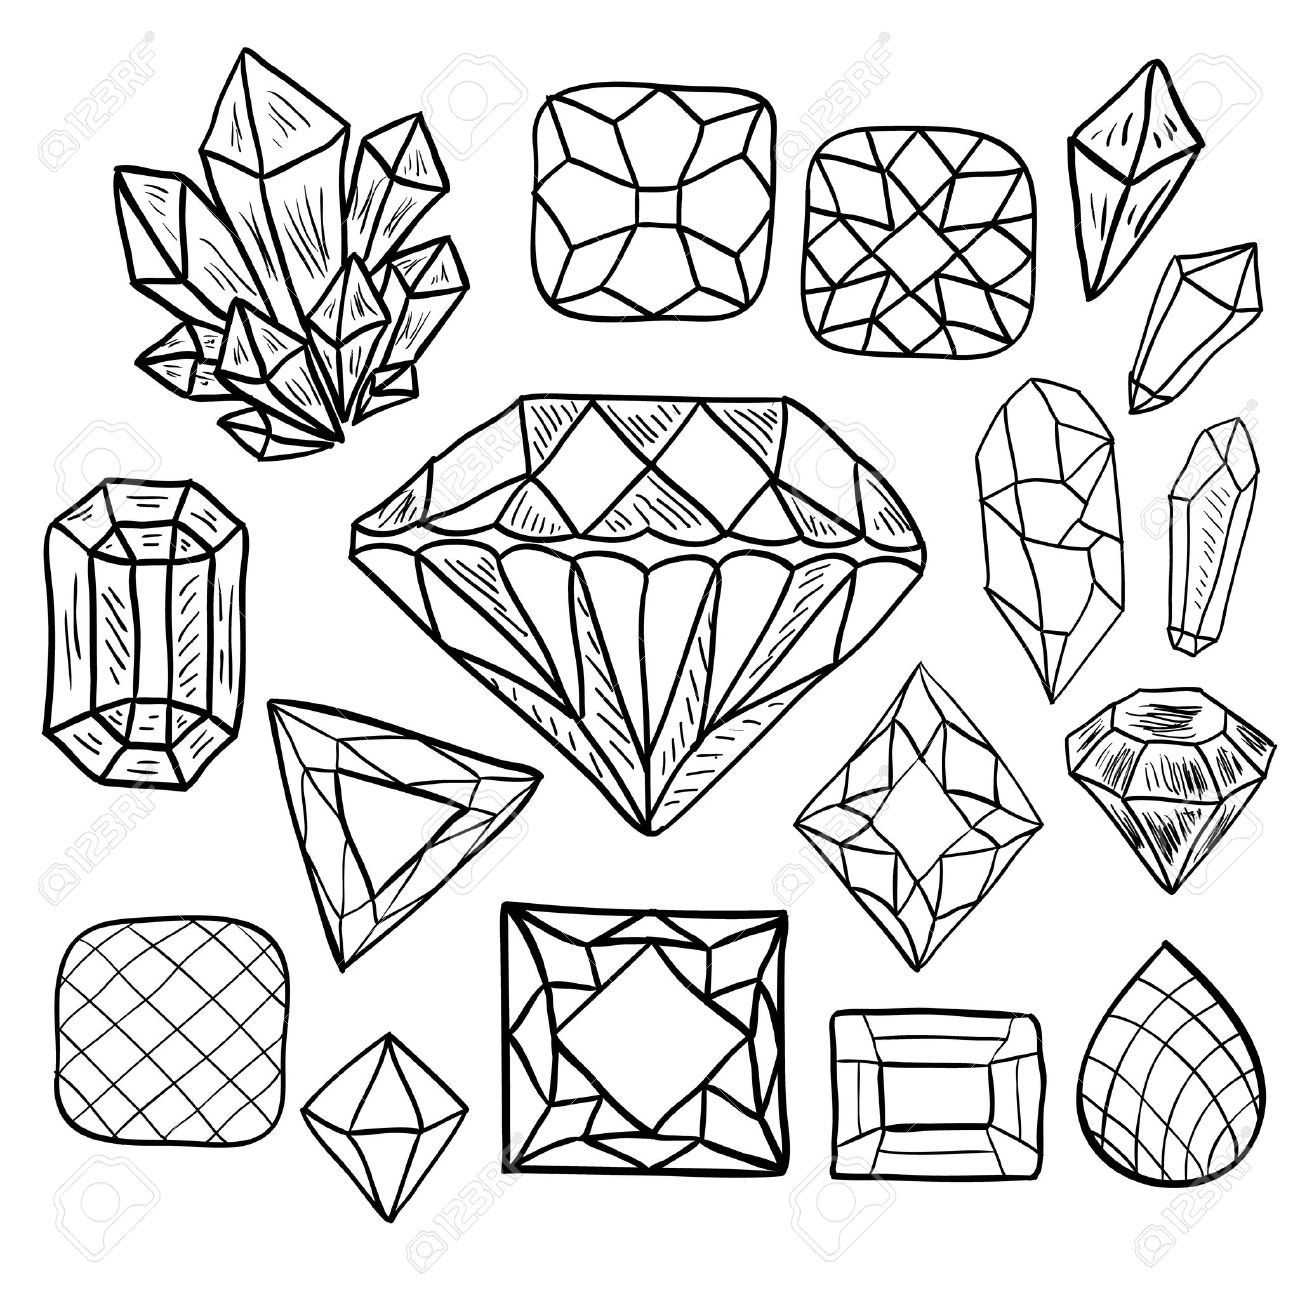 Pin By Elisabeth Quisenberry On Doodles And Mandalas How To Draw Hands Crystal Drawing Shape Coloring Pages